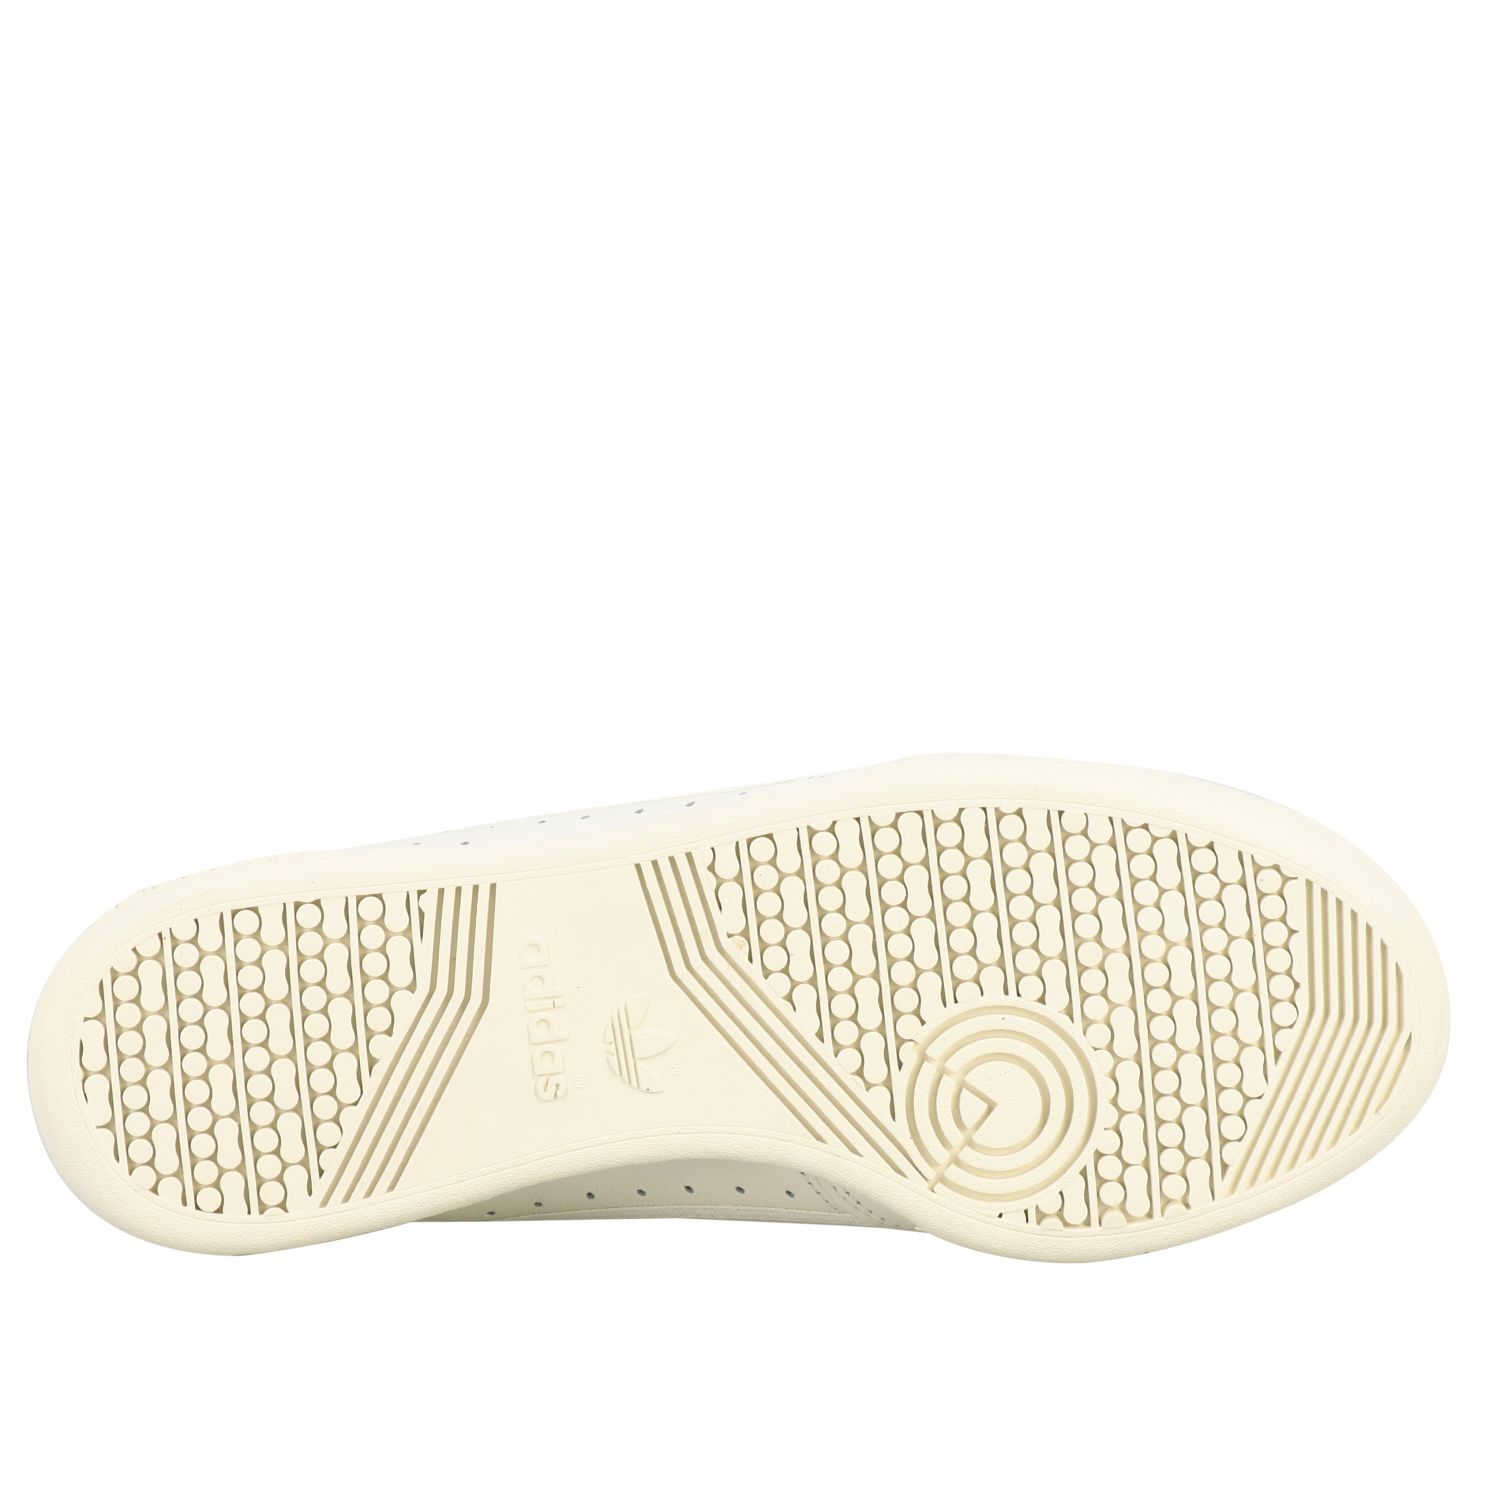 Sneakers Adidas Originals: Continental 80 Adidas Originals Sneakers aus Leder yellow cream 6